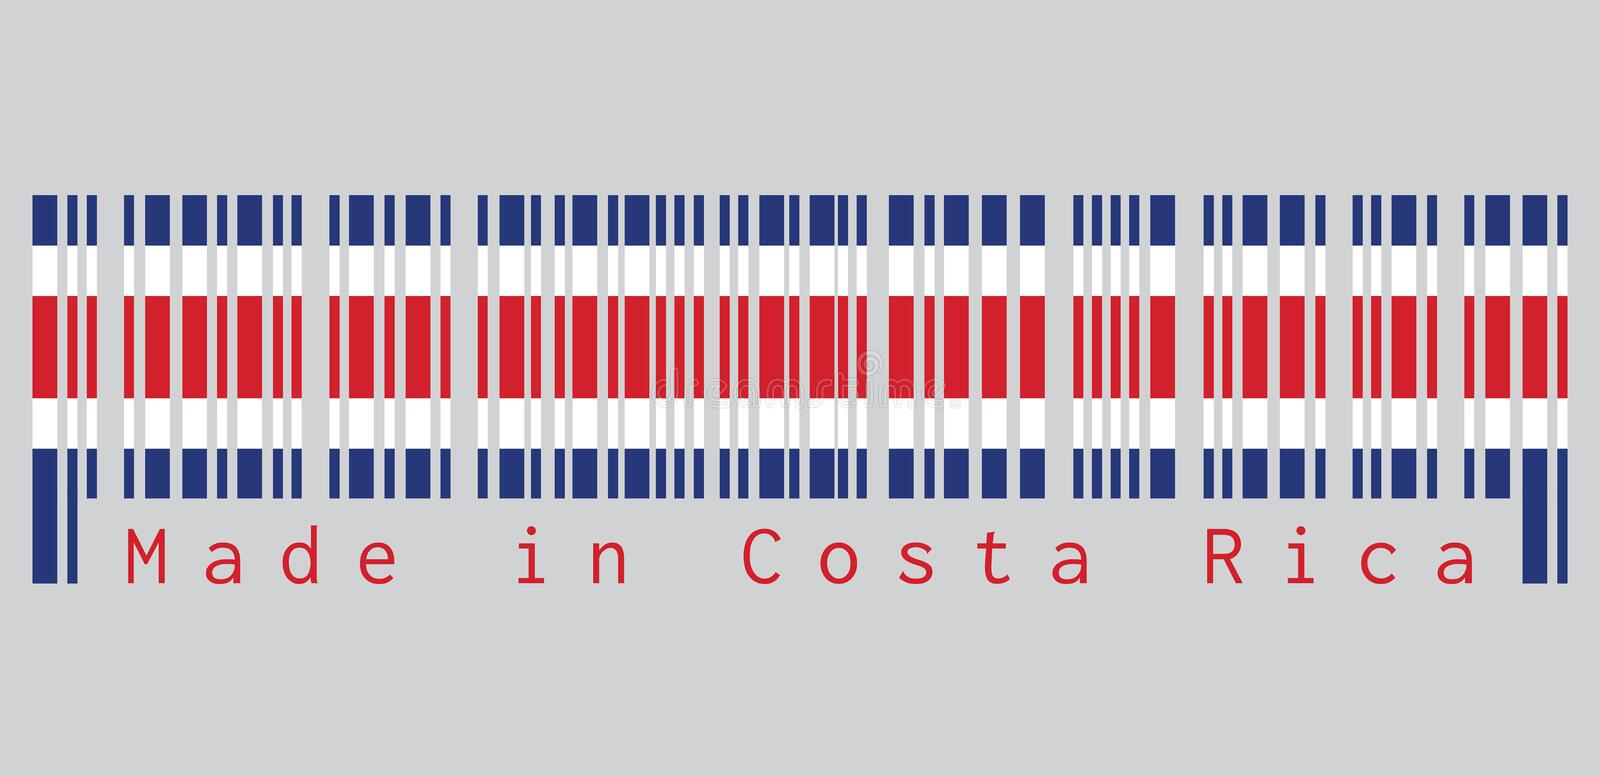 Barcode set the color of Costa Rica flag, blue red and white color on grey background, text: Made in Costa Rica. Concept of sale or business royalty free illustration